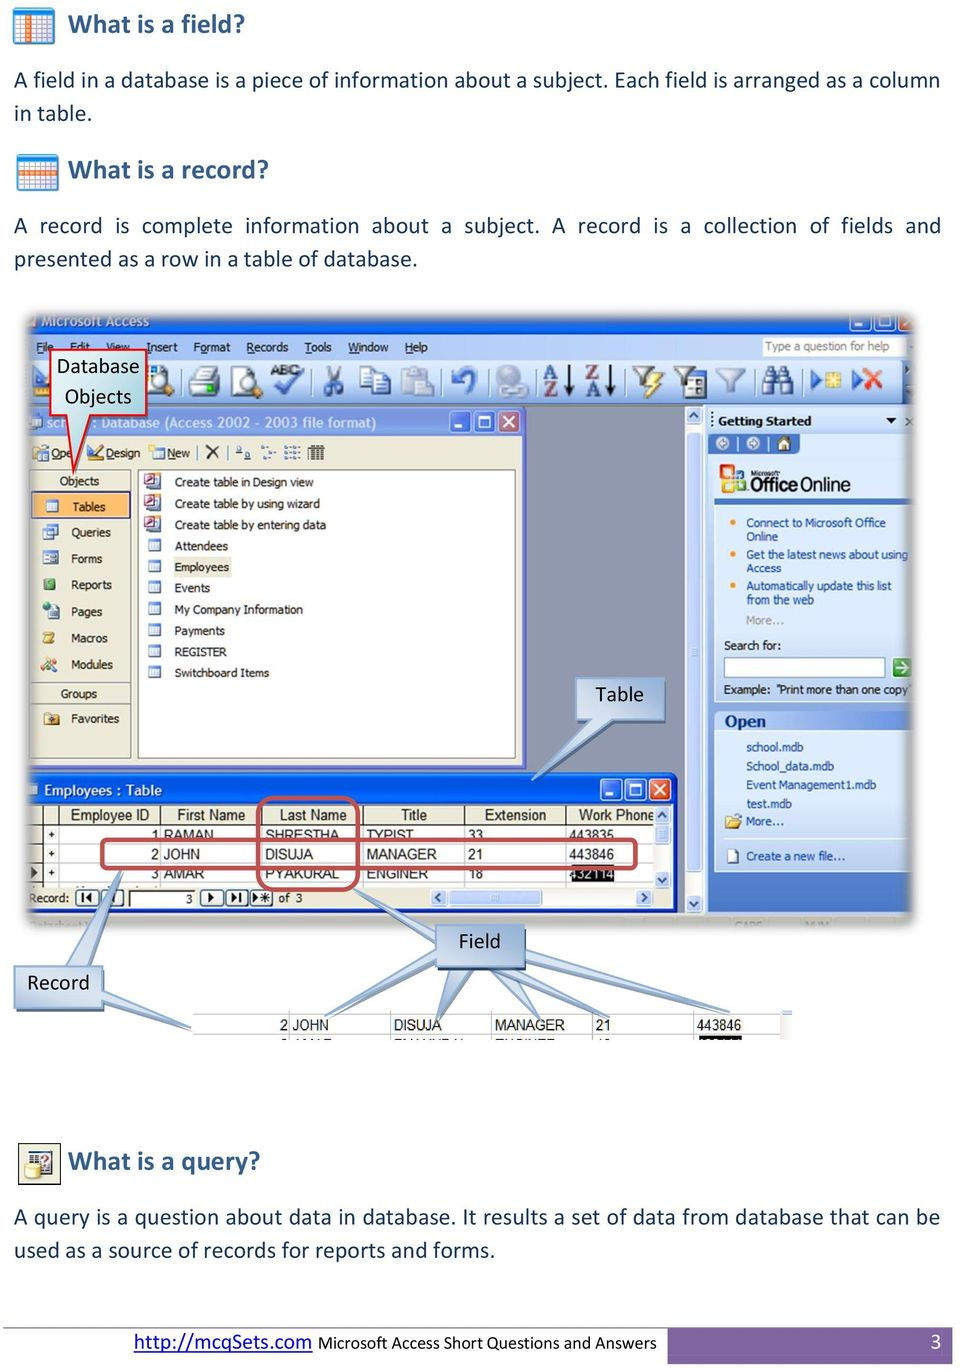 A record is a collection of fields and presented as a row in a table of database.